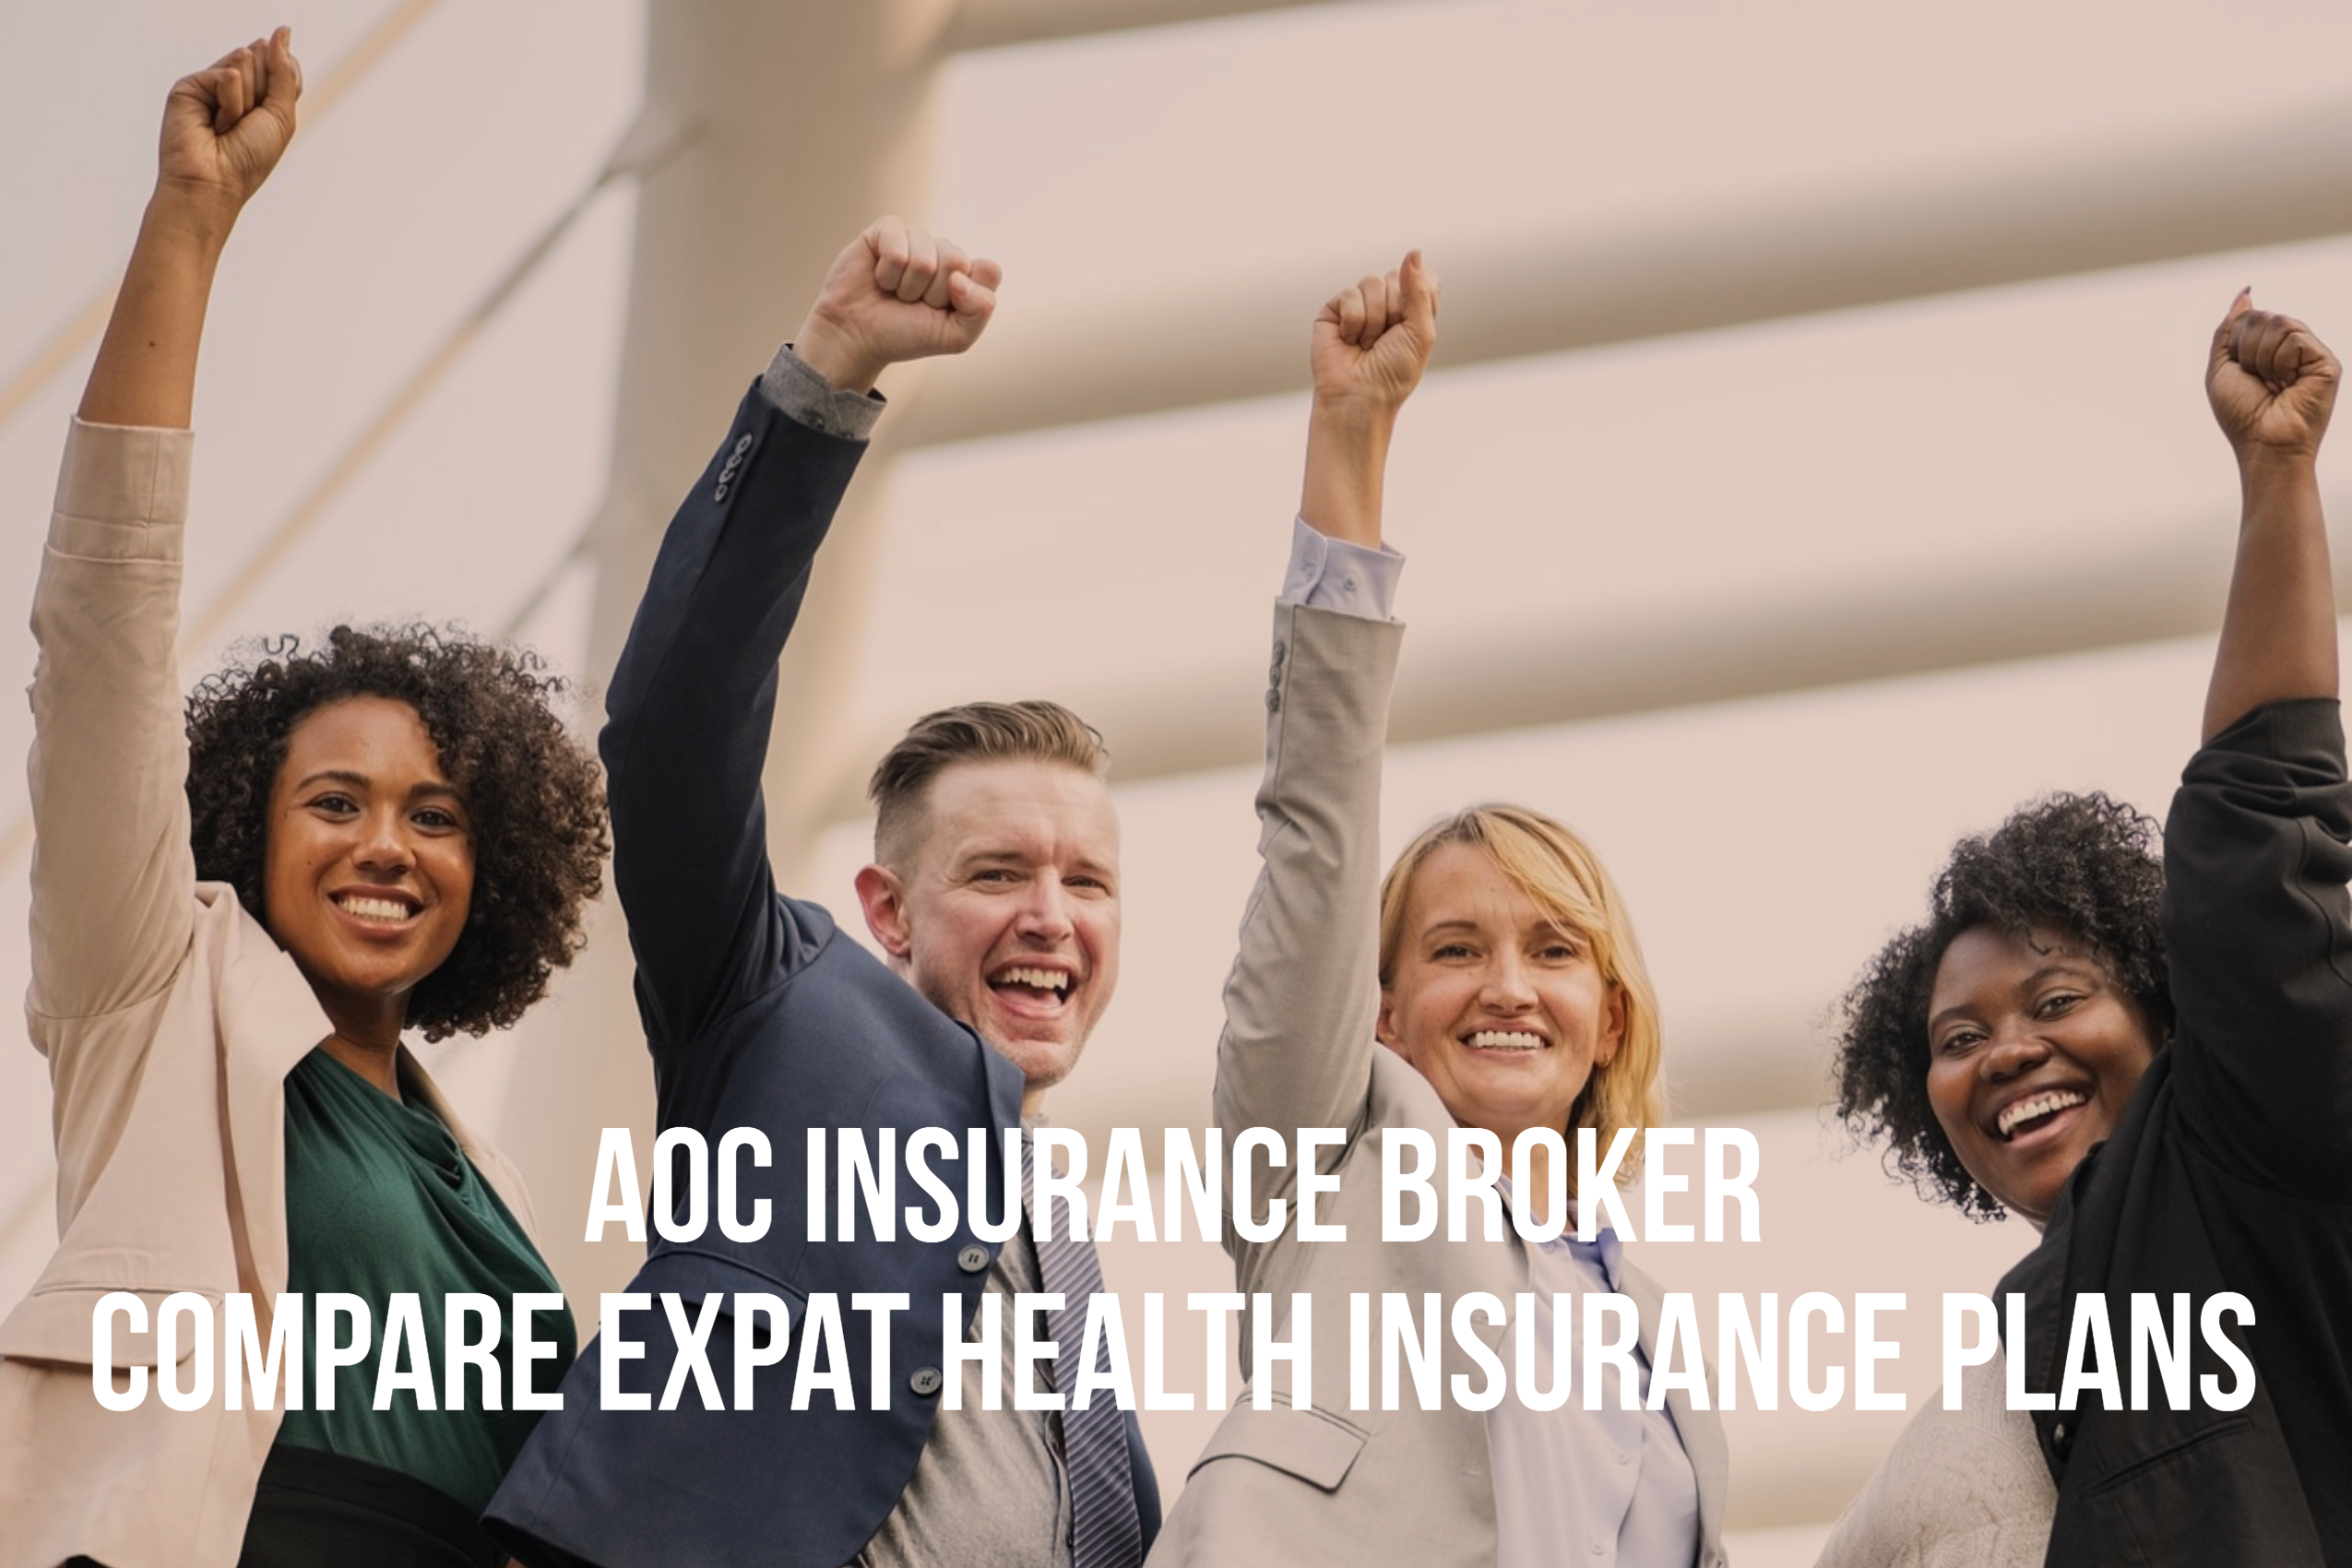 Aoc_insurance_compare_expat_health_insurance.jpg